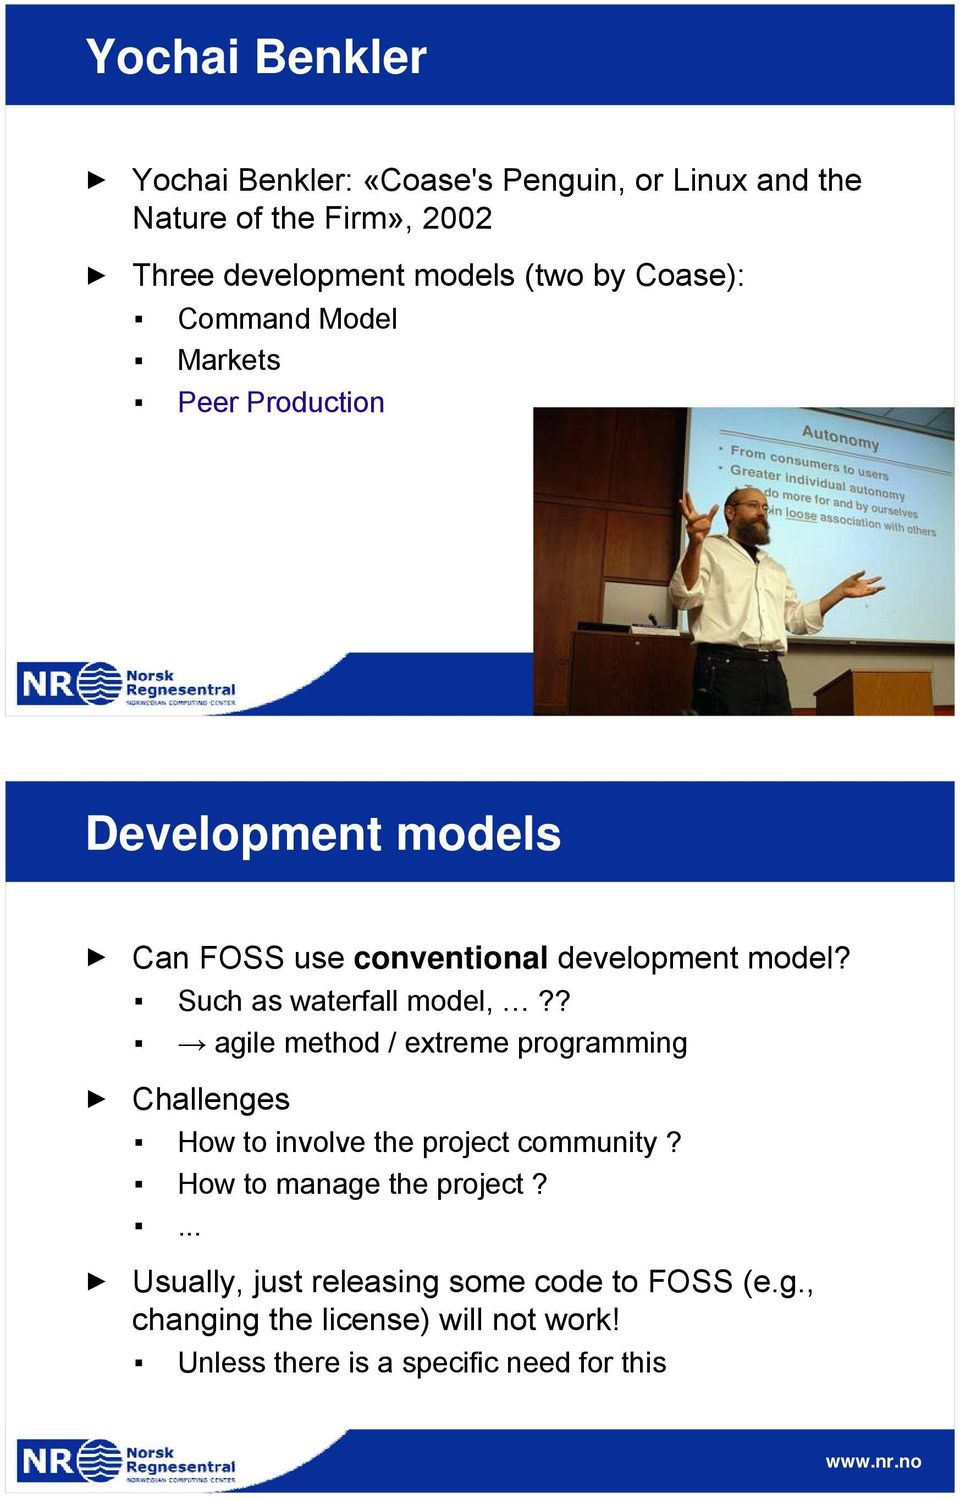 Such as waterfall model,?? agile method / extreme programming Challenges How to involve the project community?